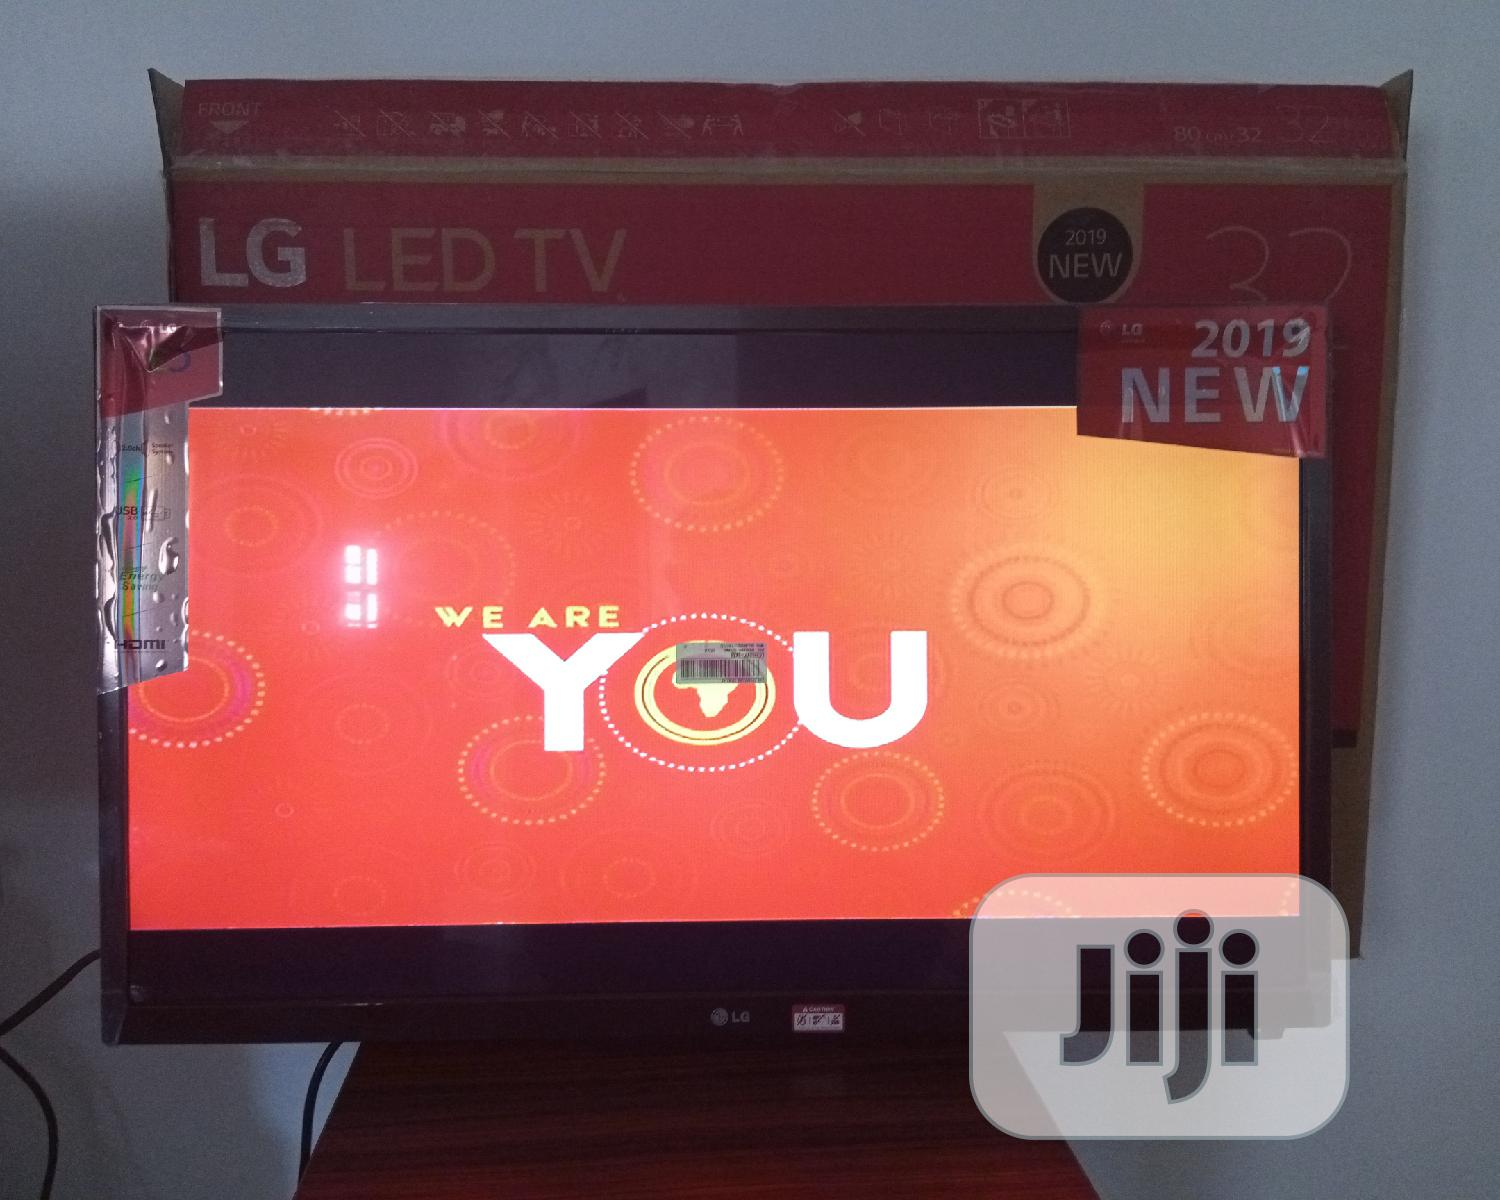 Archive: New LG Televisions